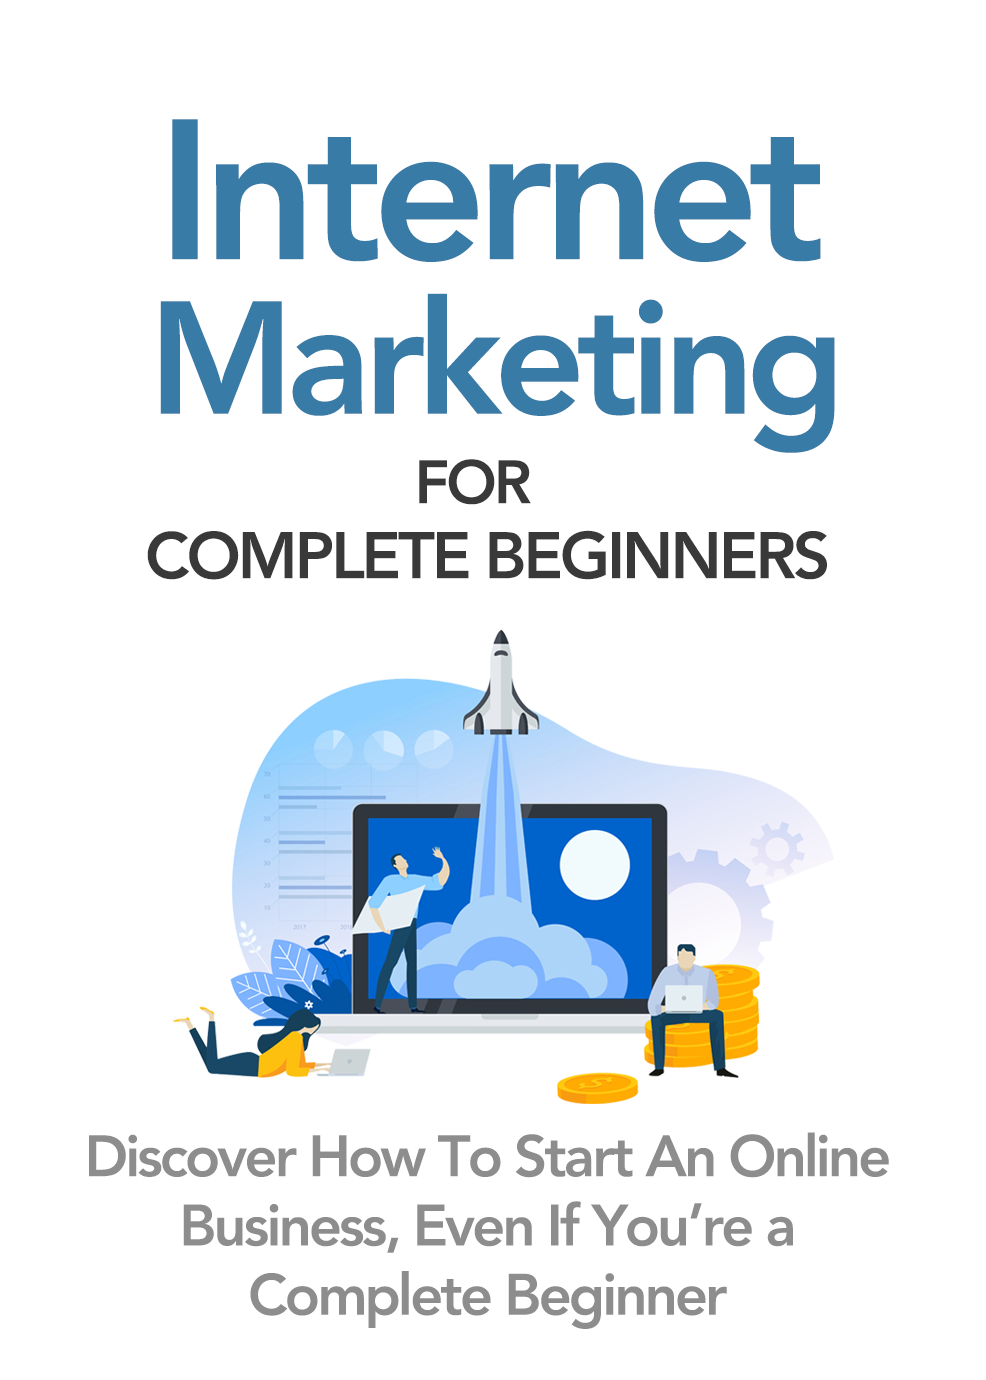 Internet Marketing For Complete Beginners (Discover How To Start An Online Business, Event If You're a Complete Beginner) Ebook's Ebook Image